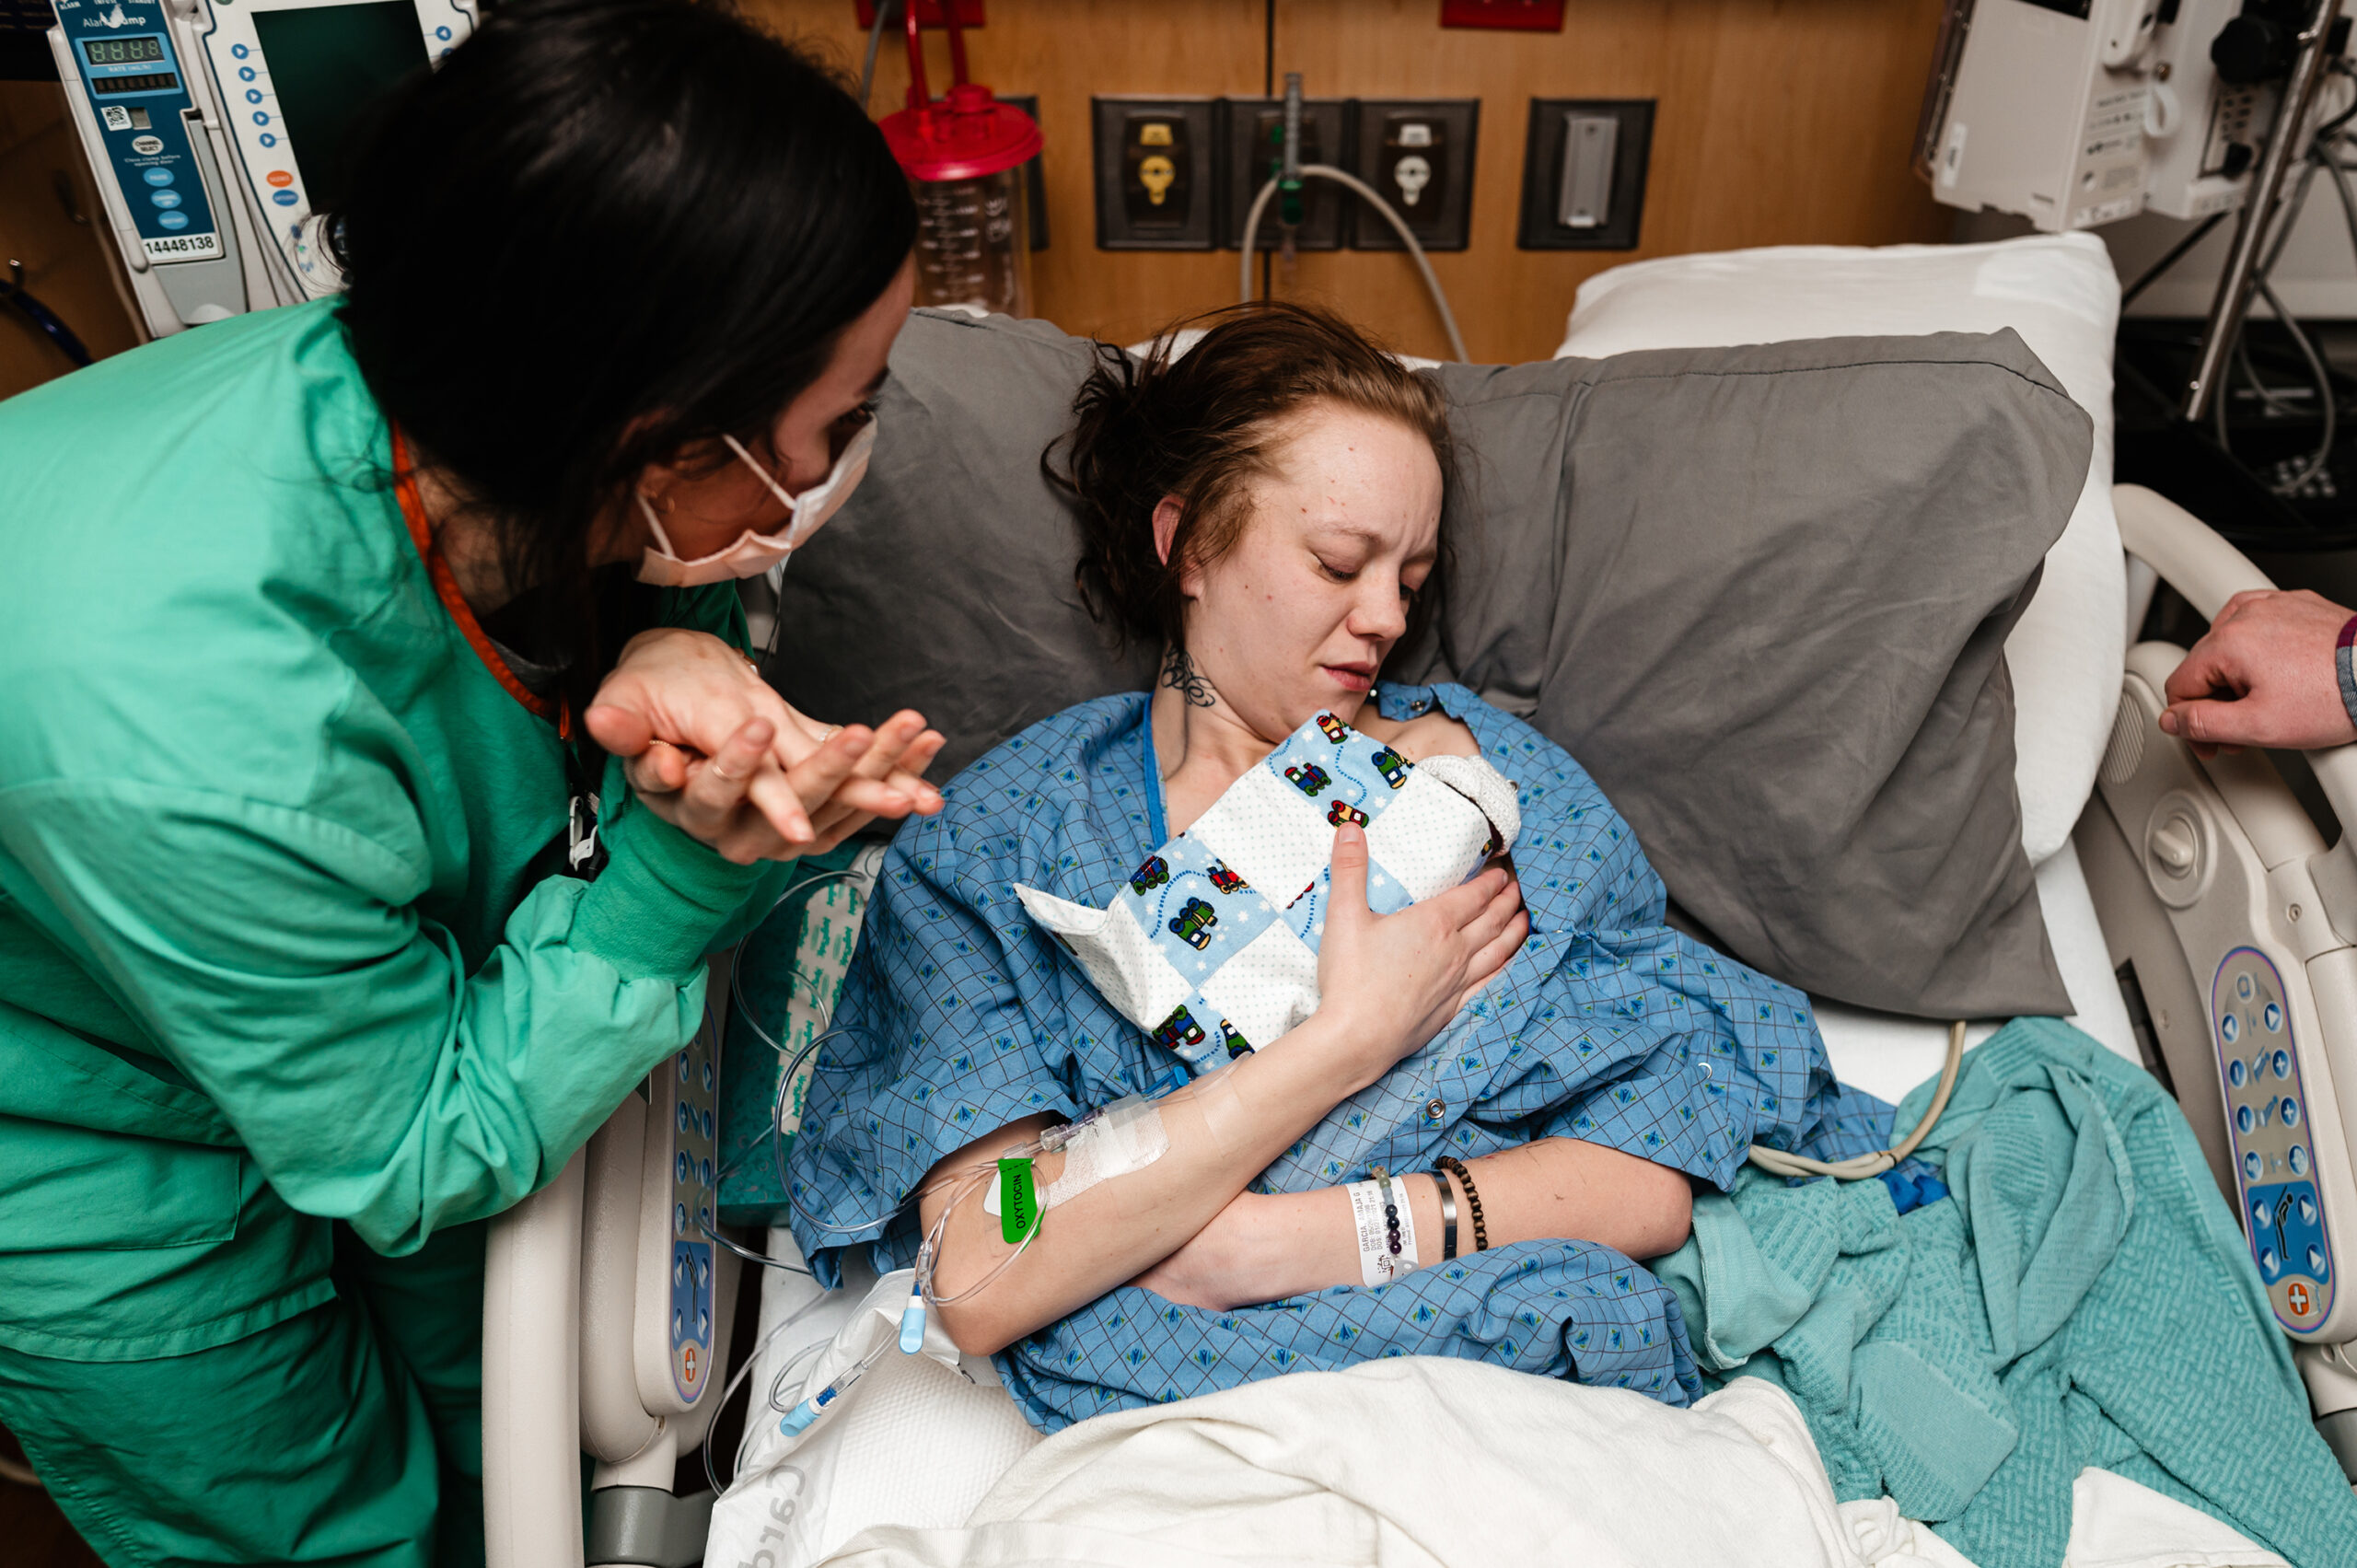 Mother holds her son who passed away at 19 weeks gestation in a hospital bed